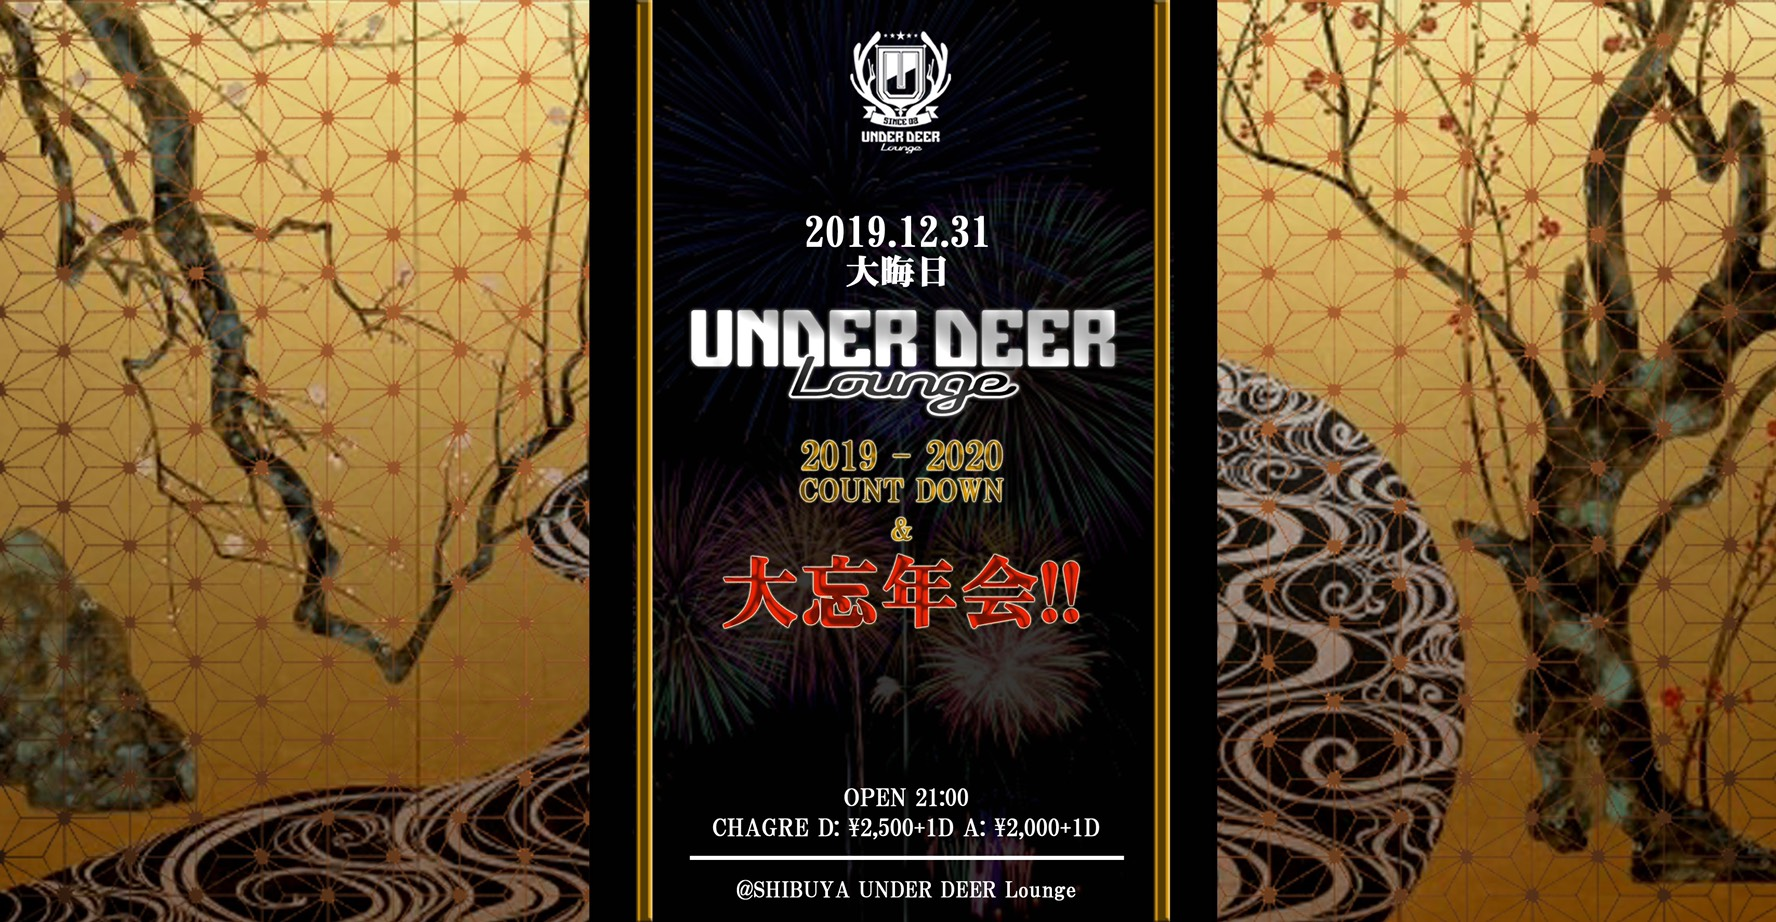 2019.12.31(tue) UNDER DEER Lounge 大忘年会!!@渋谷UNDER DEER Lounge